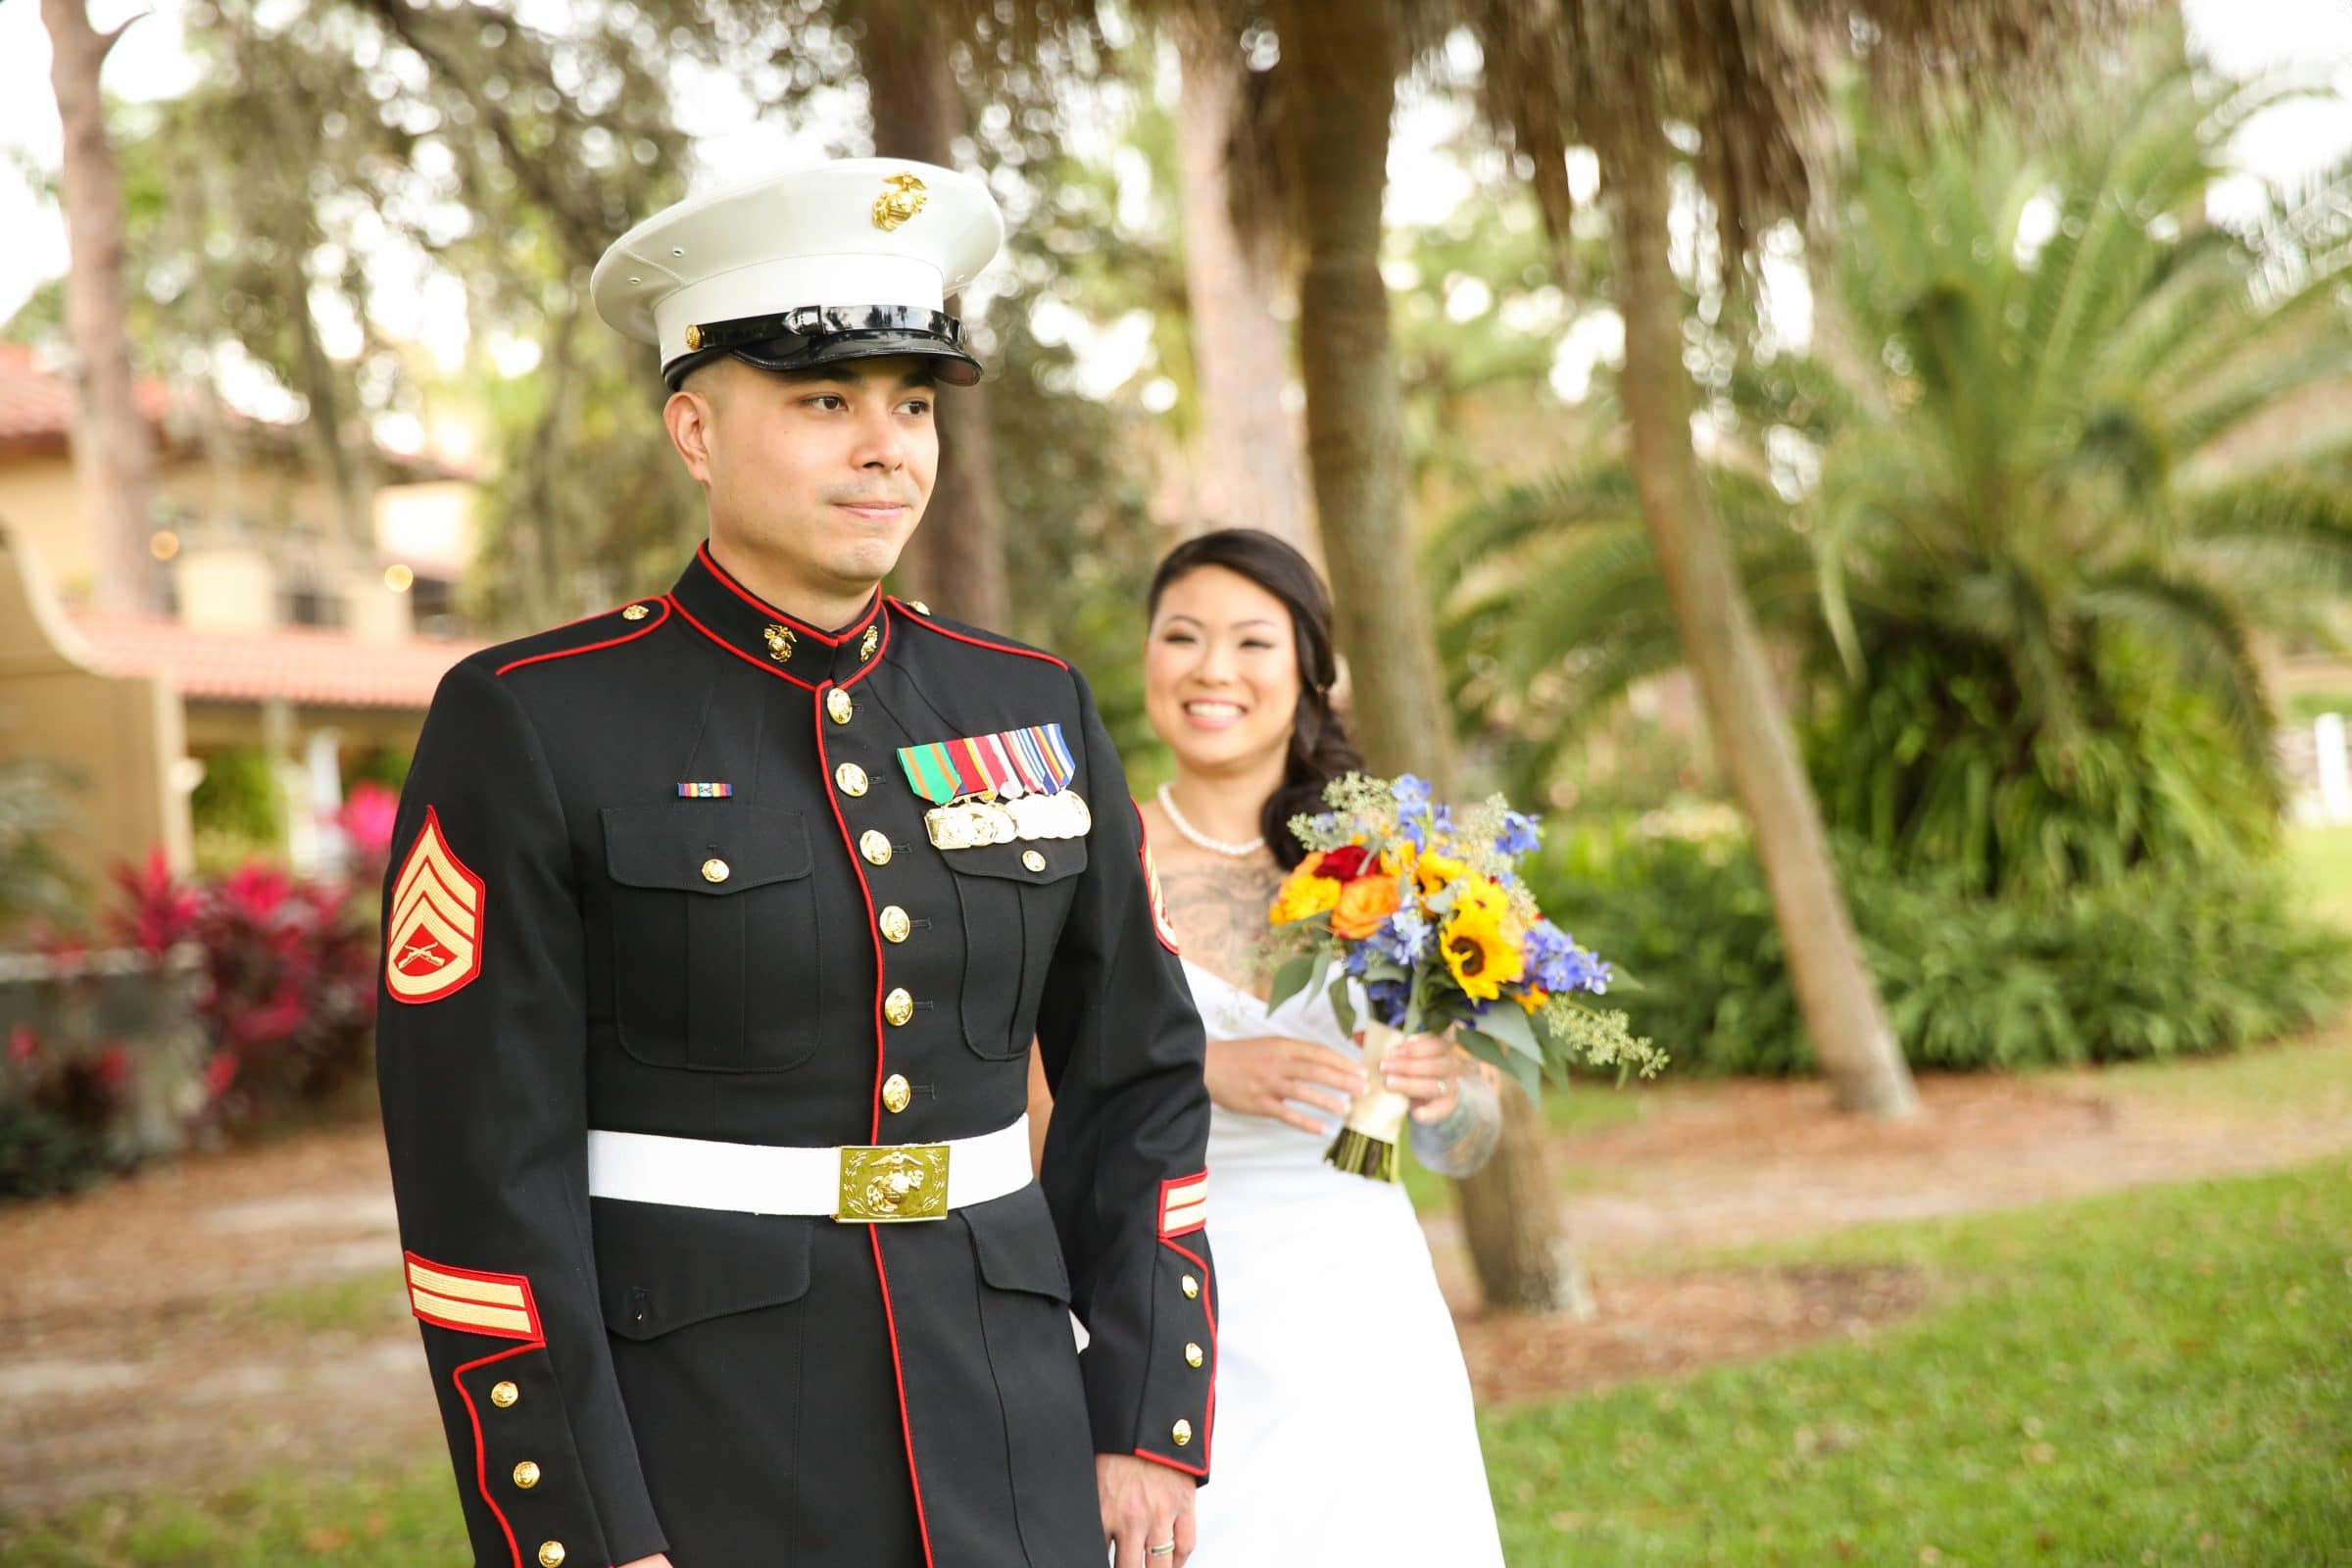 Smiling bride approaching military groom for first look